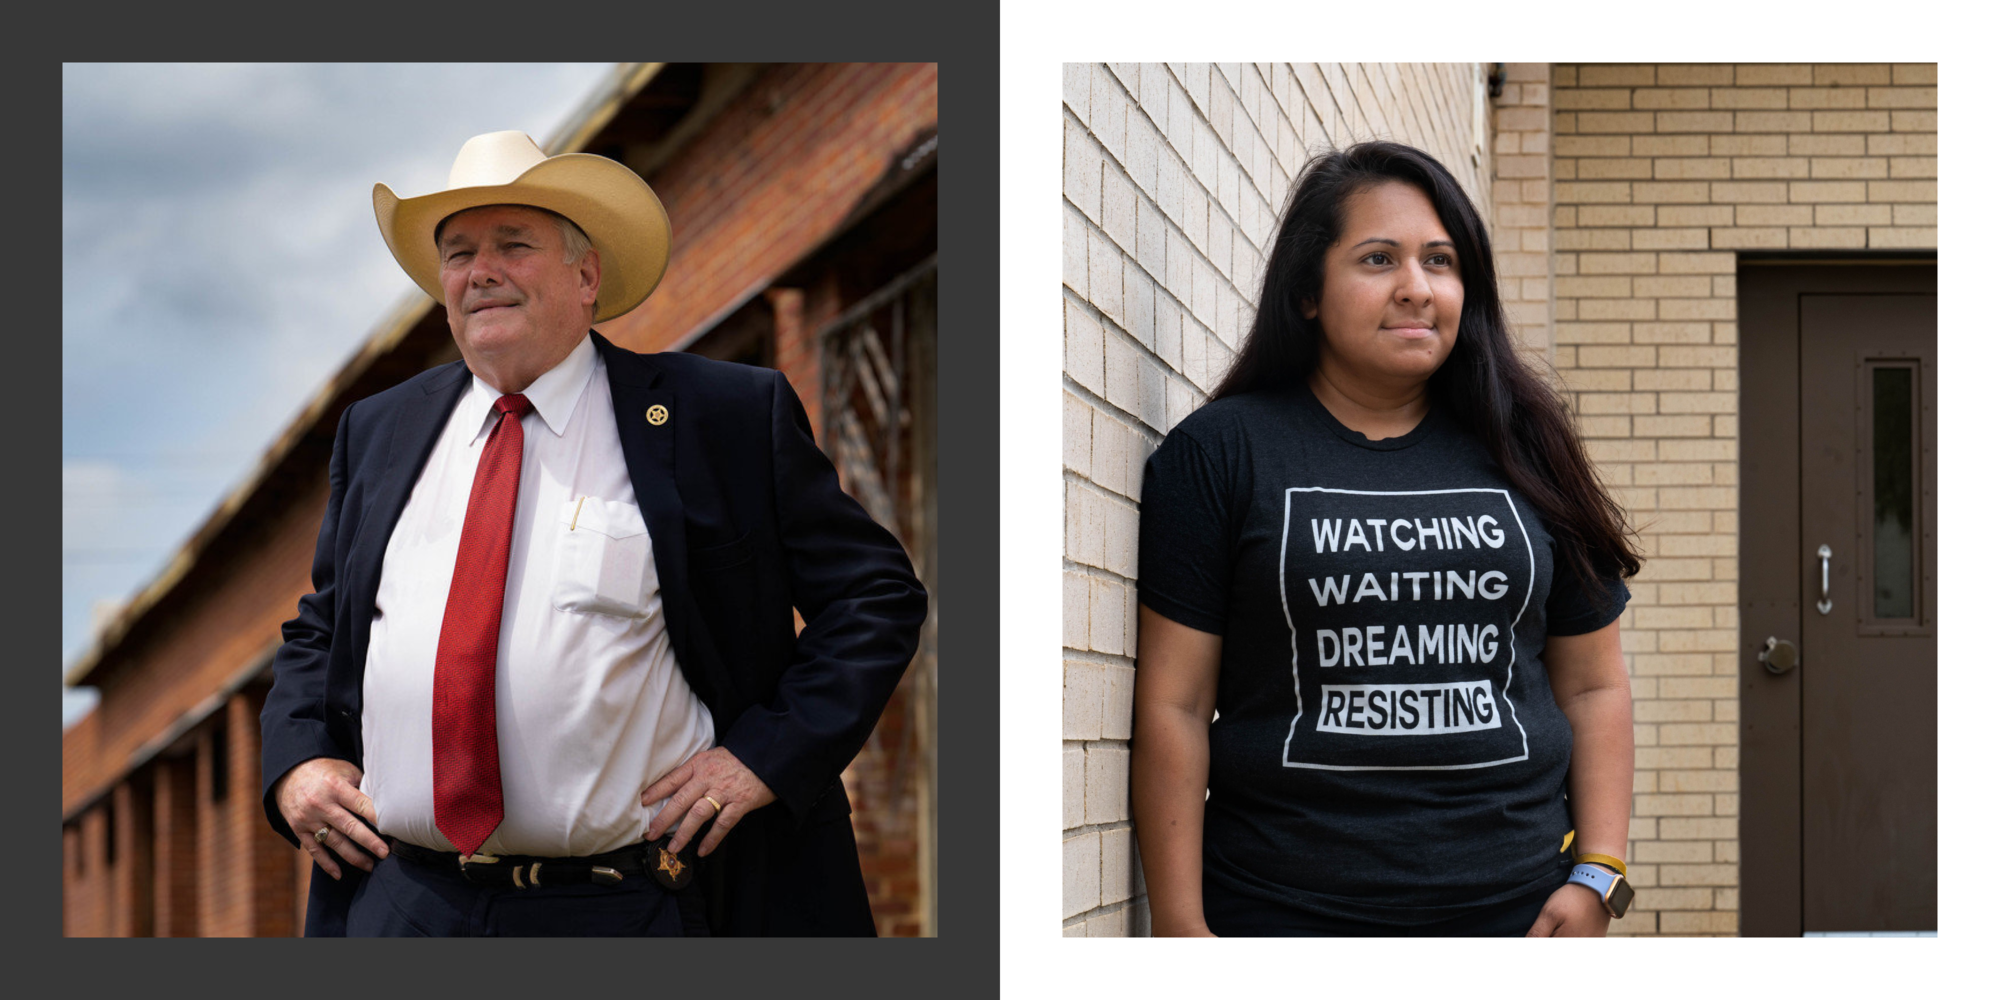 Sheriff Larry Smith, left, outside the Smith County Sheriff's office; and Dalila Reynoso near the door where detainees were released from the Smith County jail in Tyler, Texas, in March.